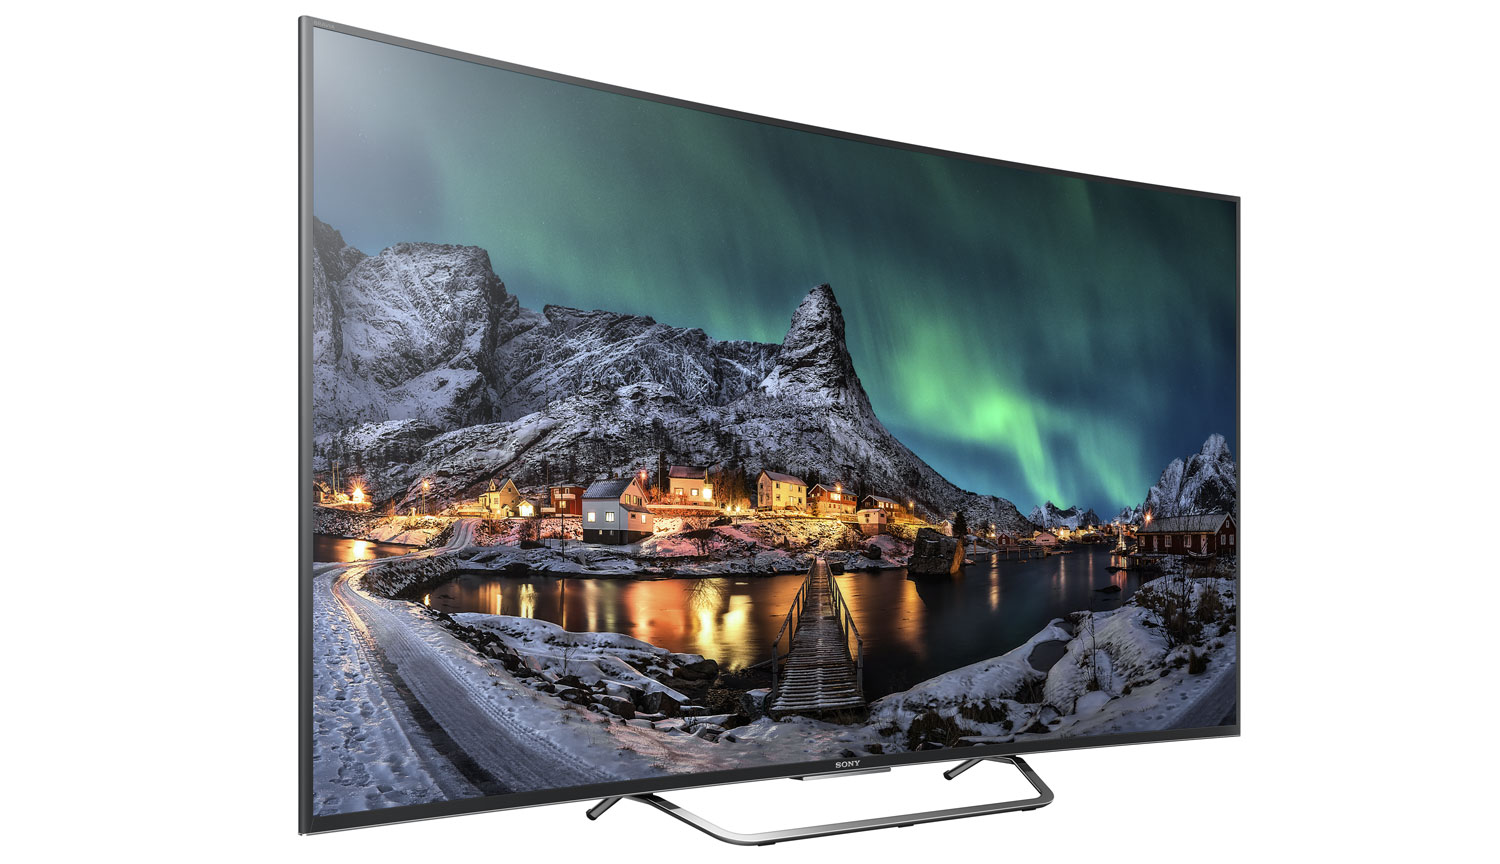 Sony's new X80C and S80C are affordable 4K TVs - FlatpanelsHD